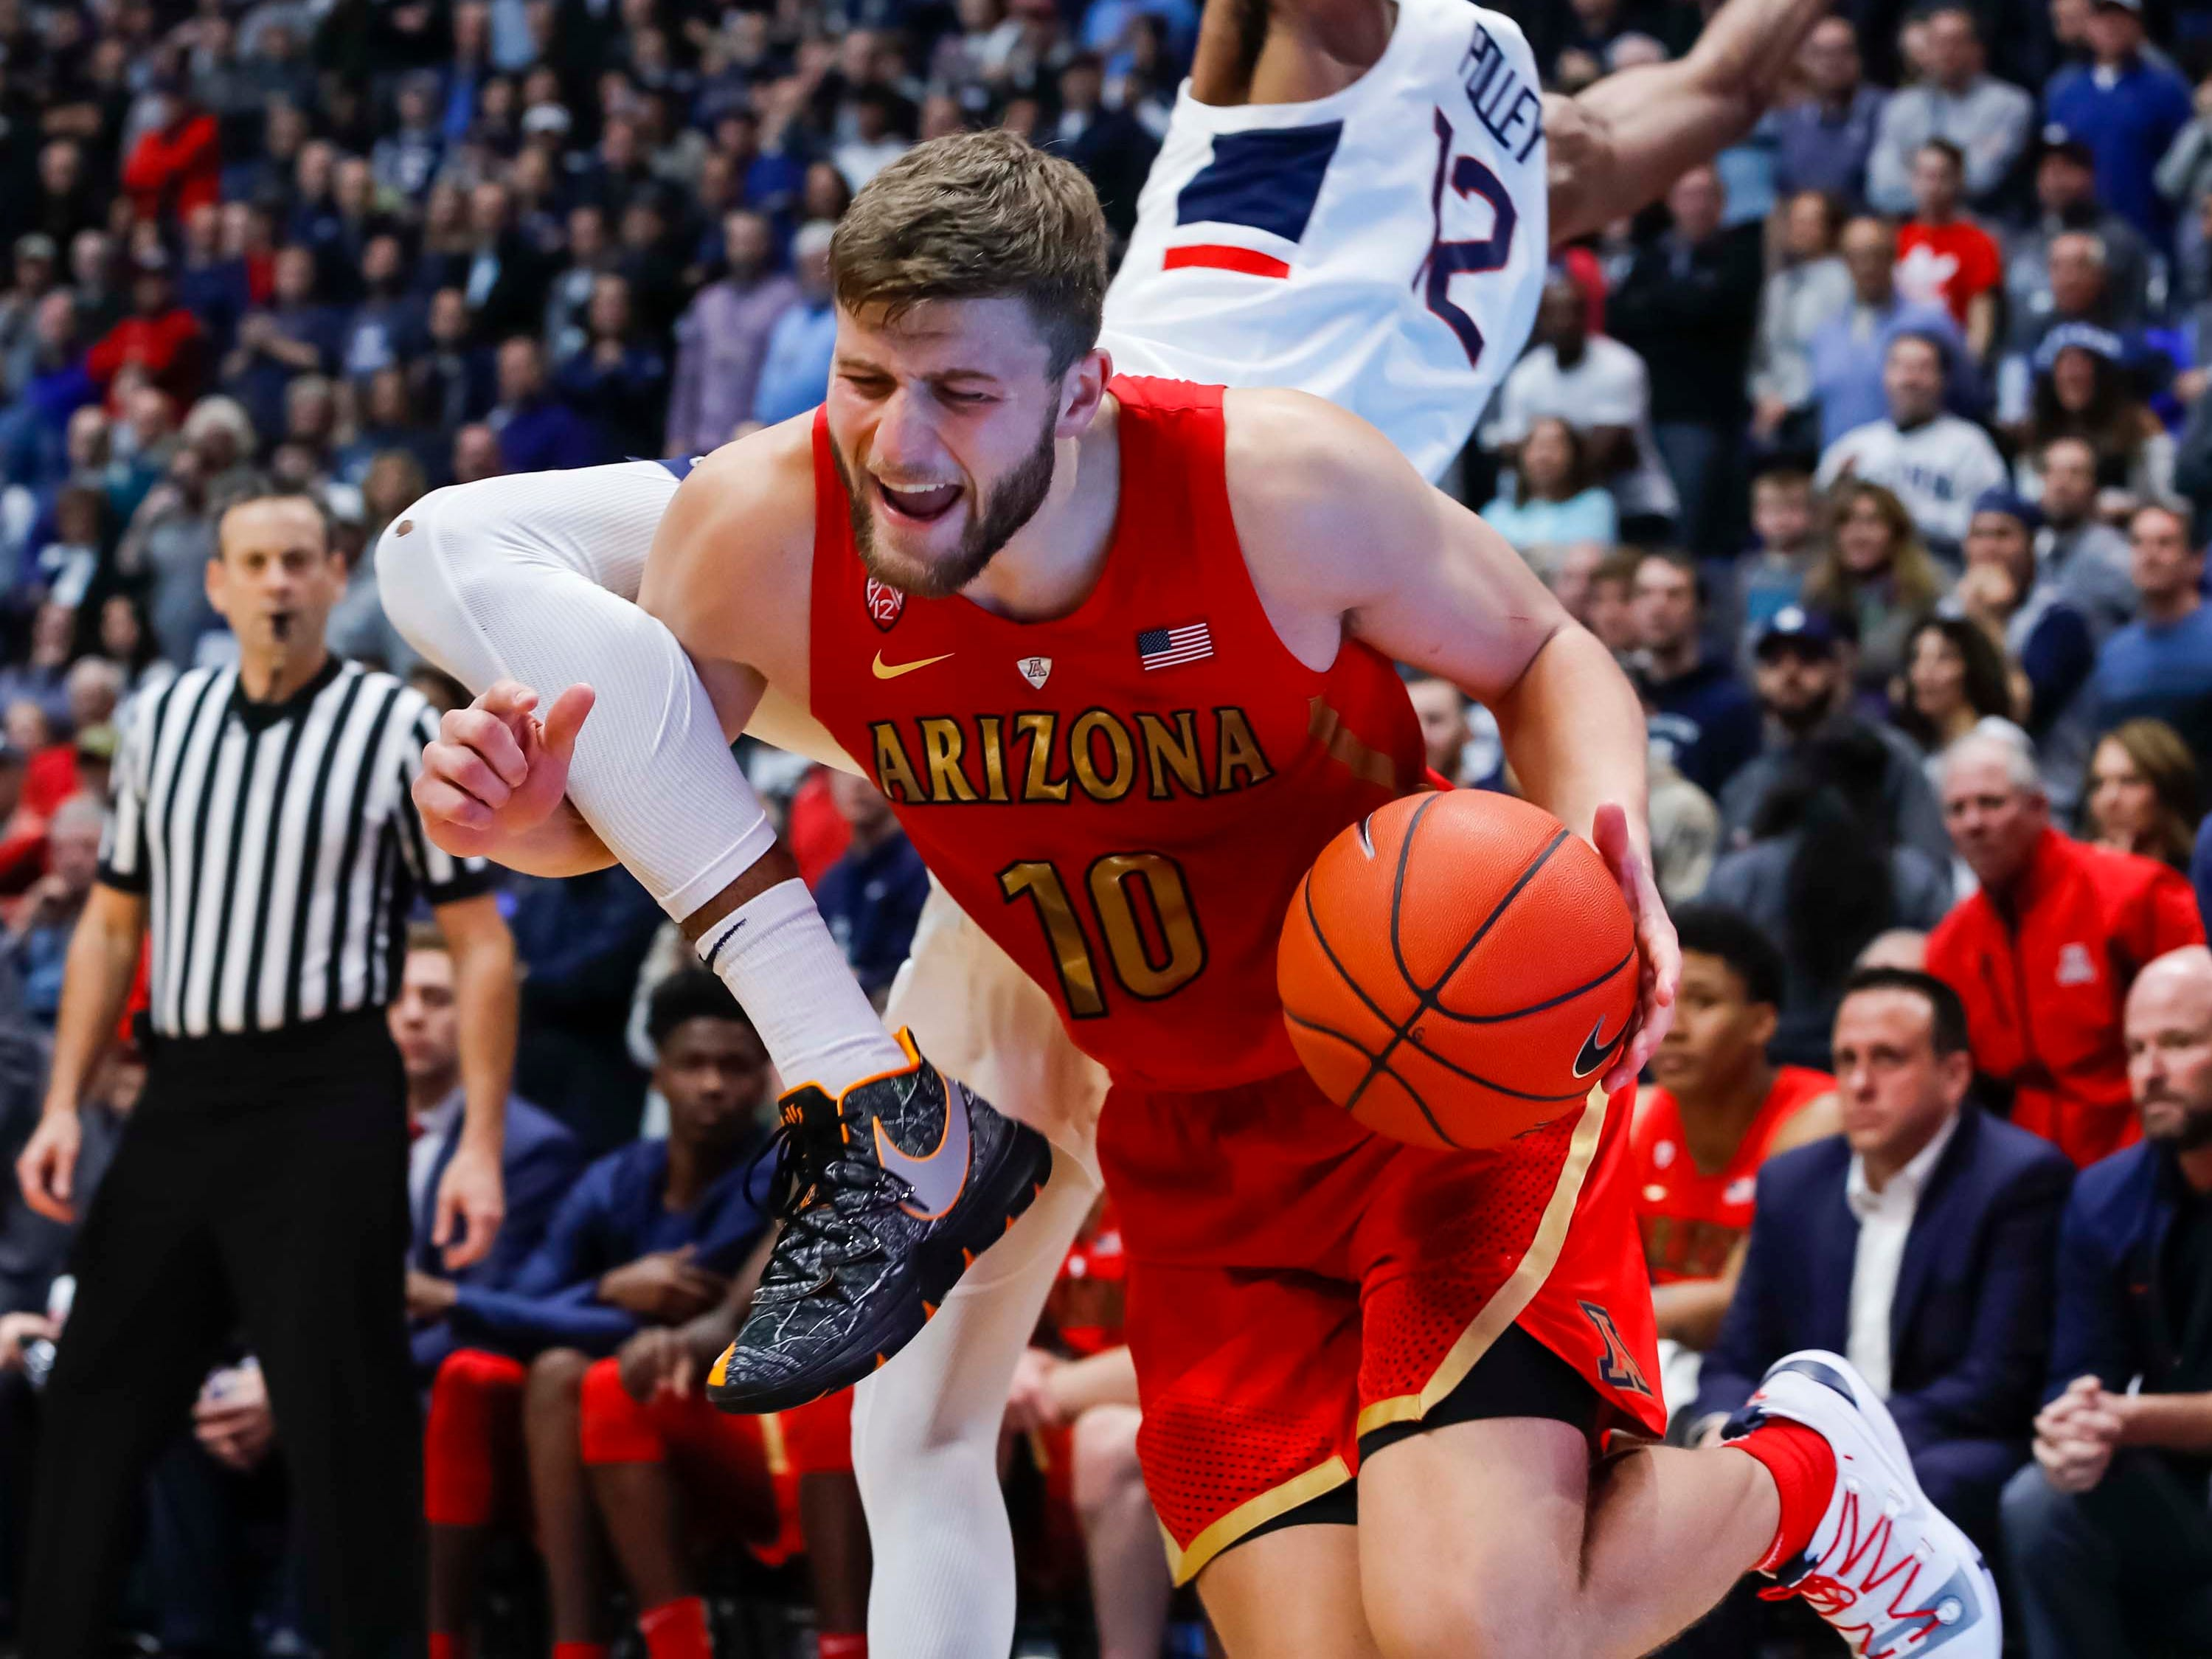 Dec 2, 2018; Storrs, CT, USA; Connecticut Huskies forward Tyler Polley (12) fouls Arizona Wildcats forward Ryan Luther (10) in the second half at XL Center. Arizona defeated UConn 76-72. Mandatory Credit: David Butler II-USA TODAY Sports